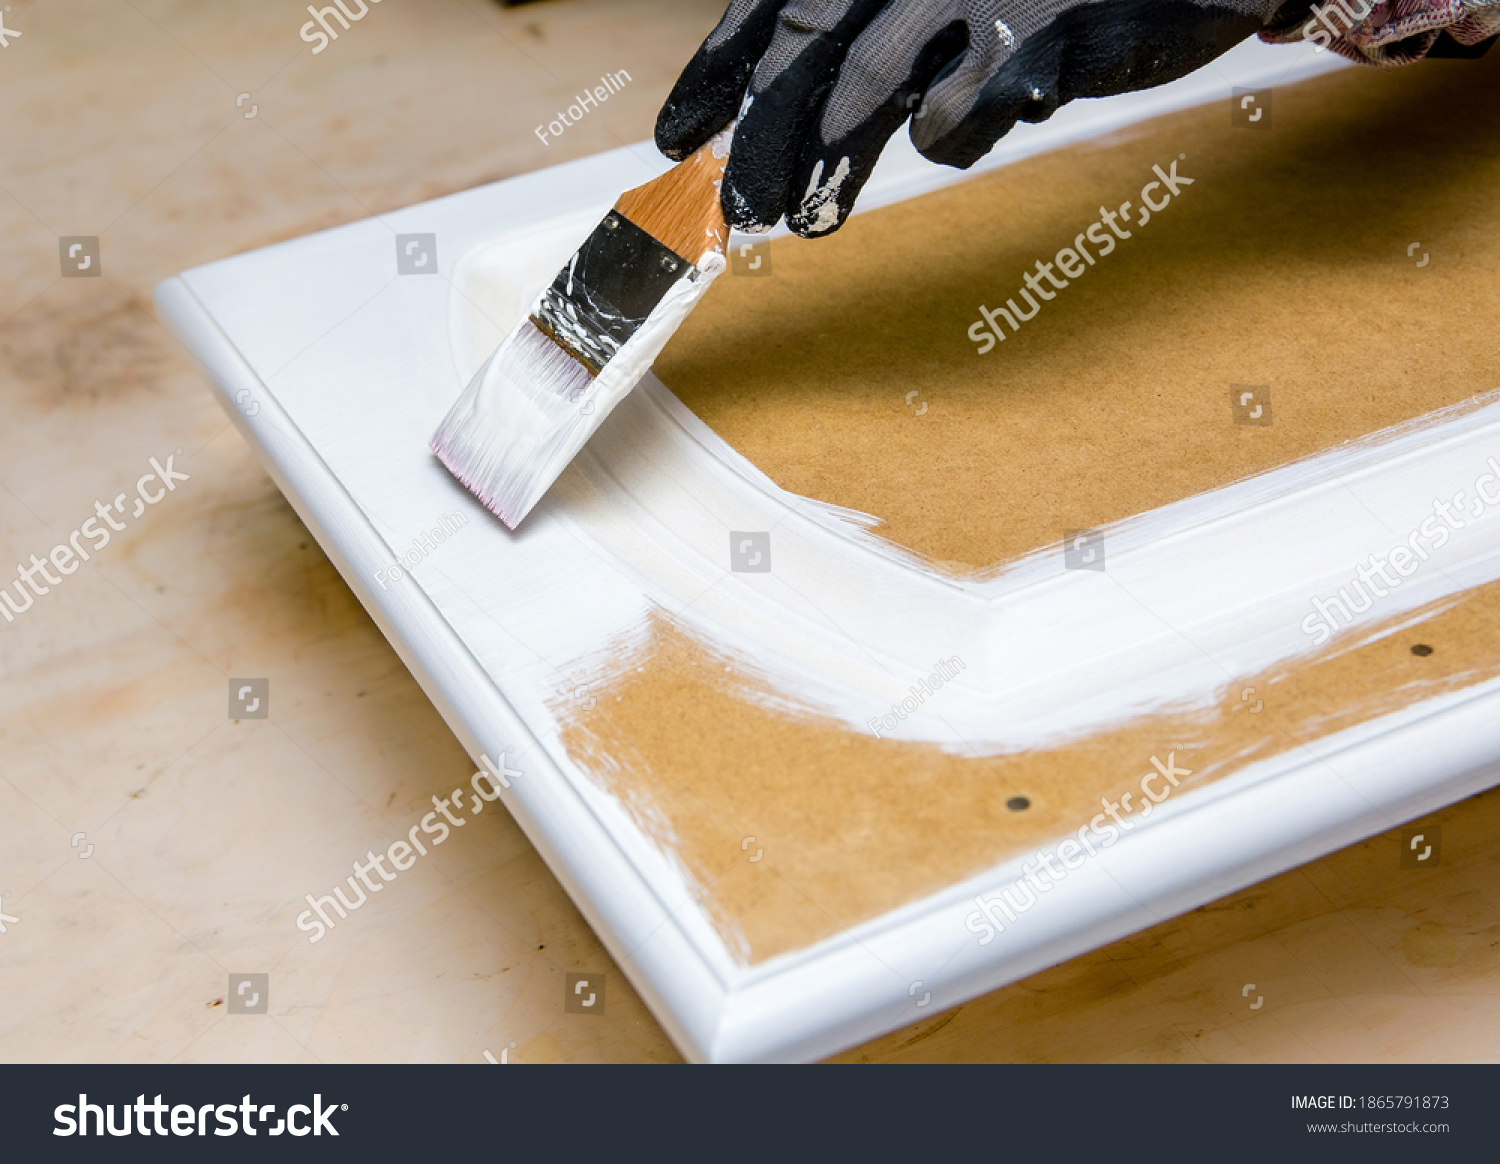 Repainting kitchen cabinet doors with white chalk paint indoors at home. Giving old kitchen new look concept. Hand holding a paint brush tool with paint against old cupboard door. #1865791873